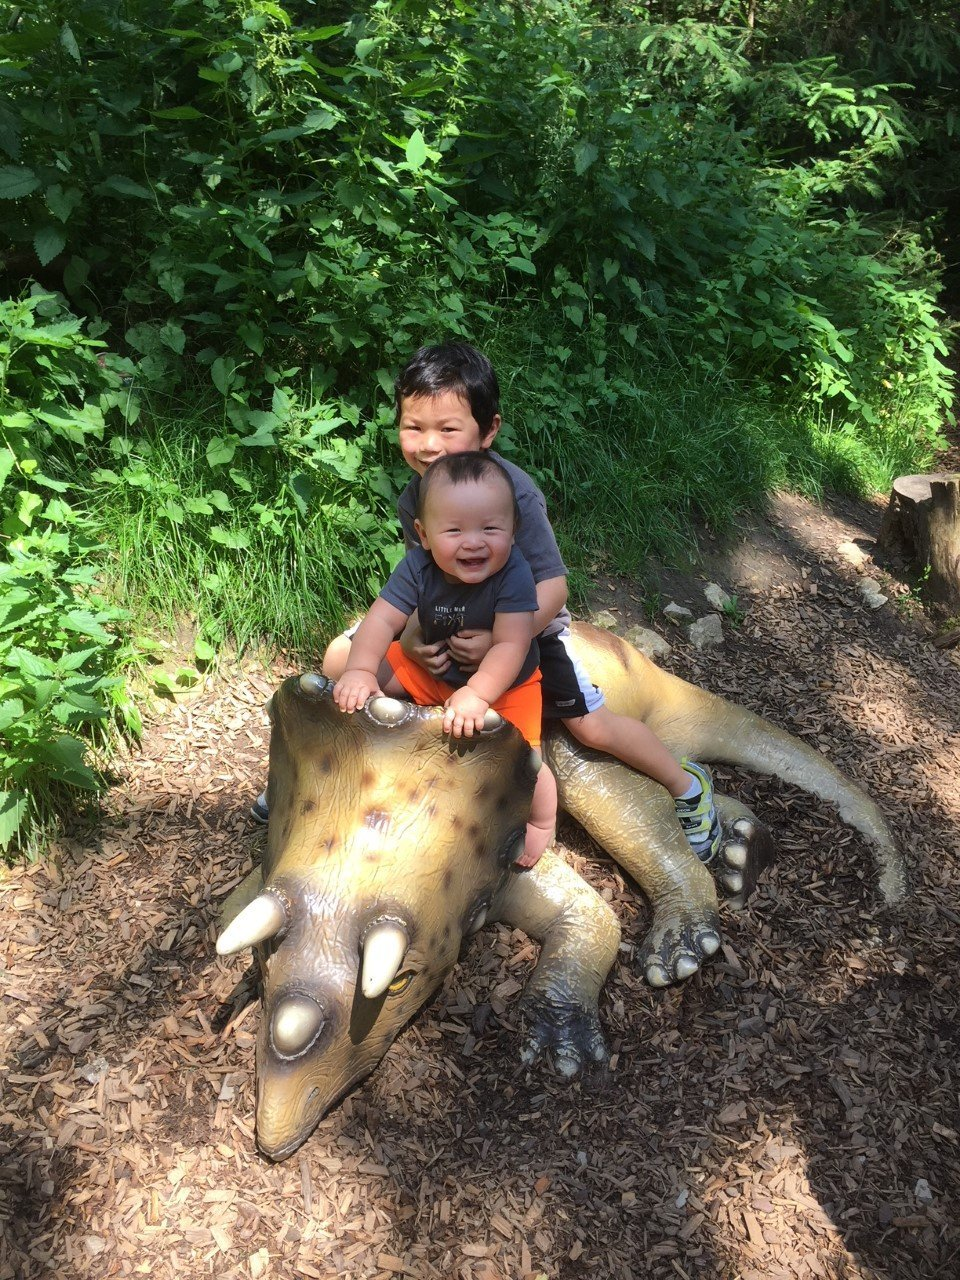 Riding a baby Triceratops